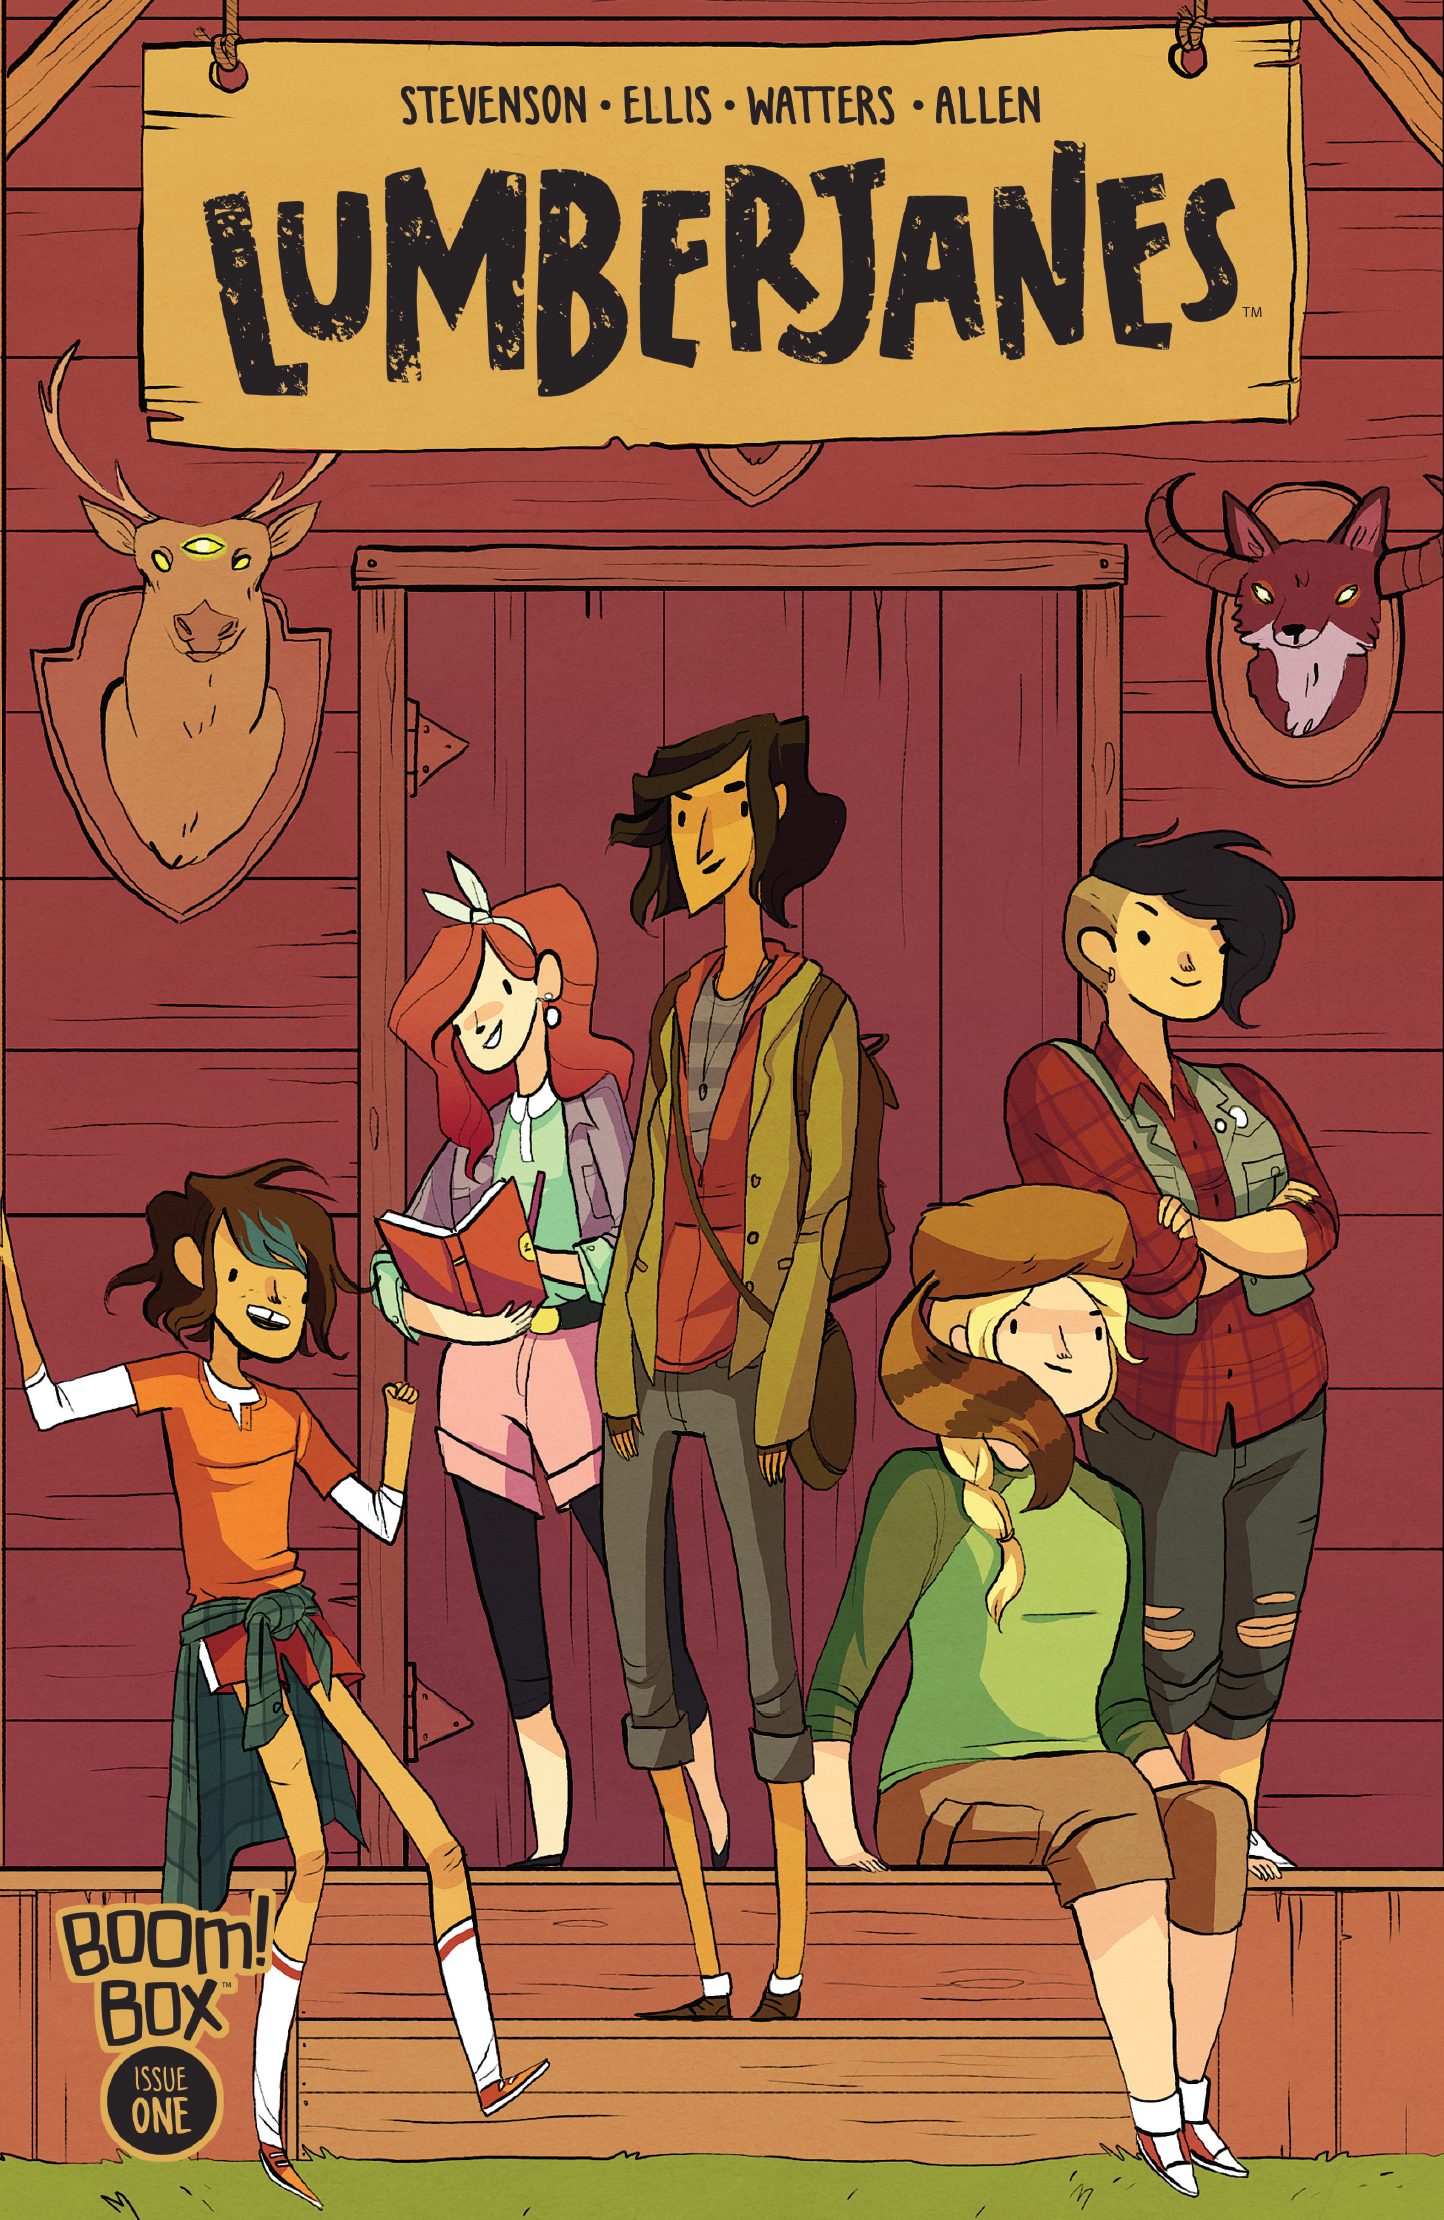 Cover Image of Lumberjanes #1